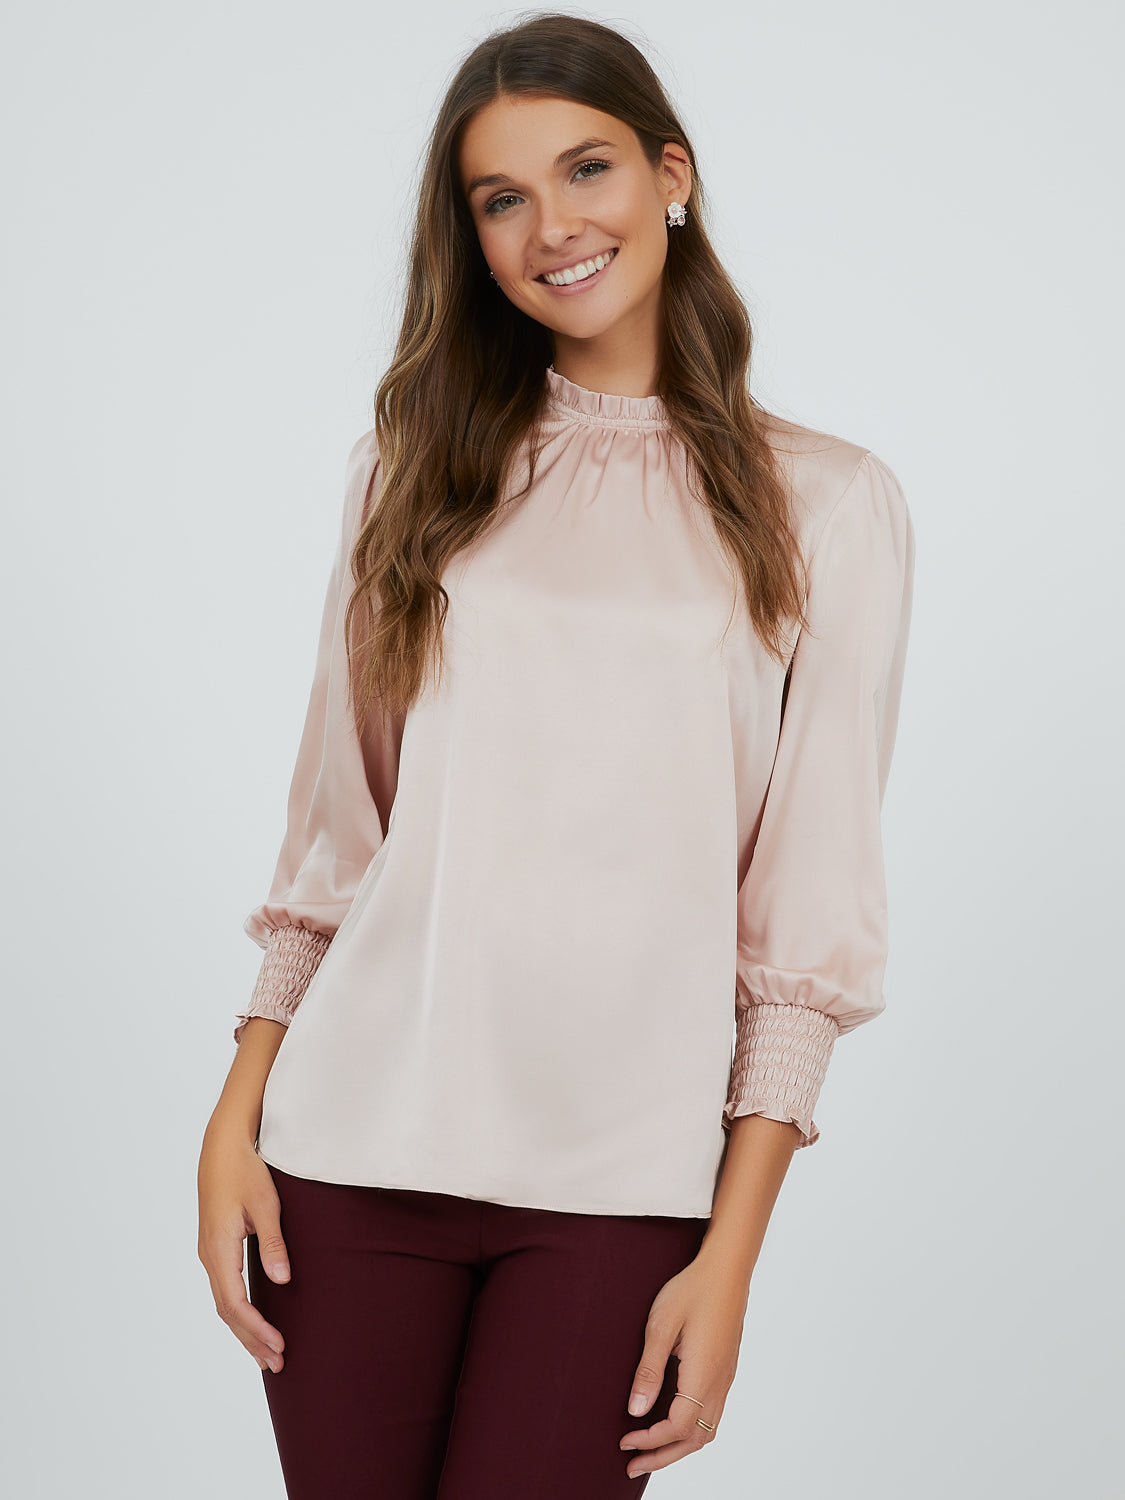 Sleek Satin High Neck Top